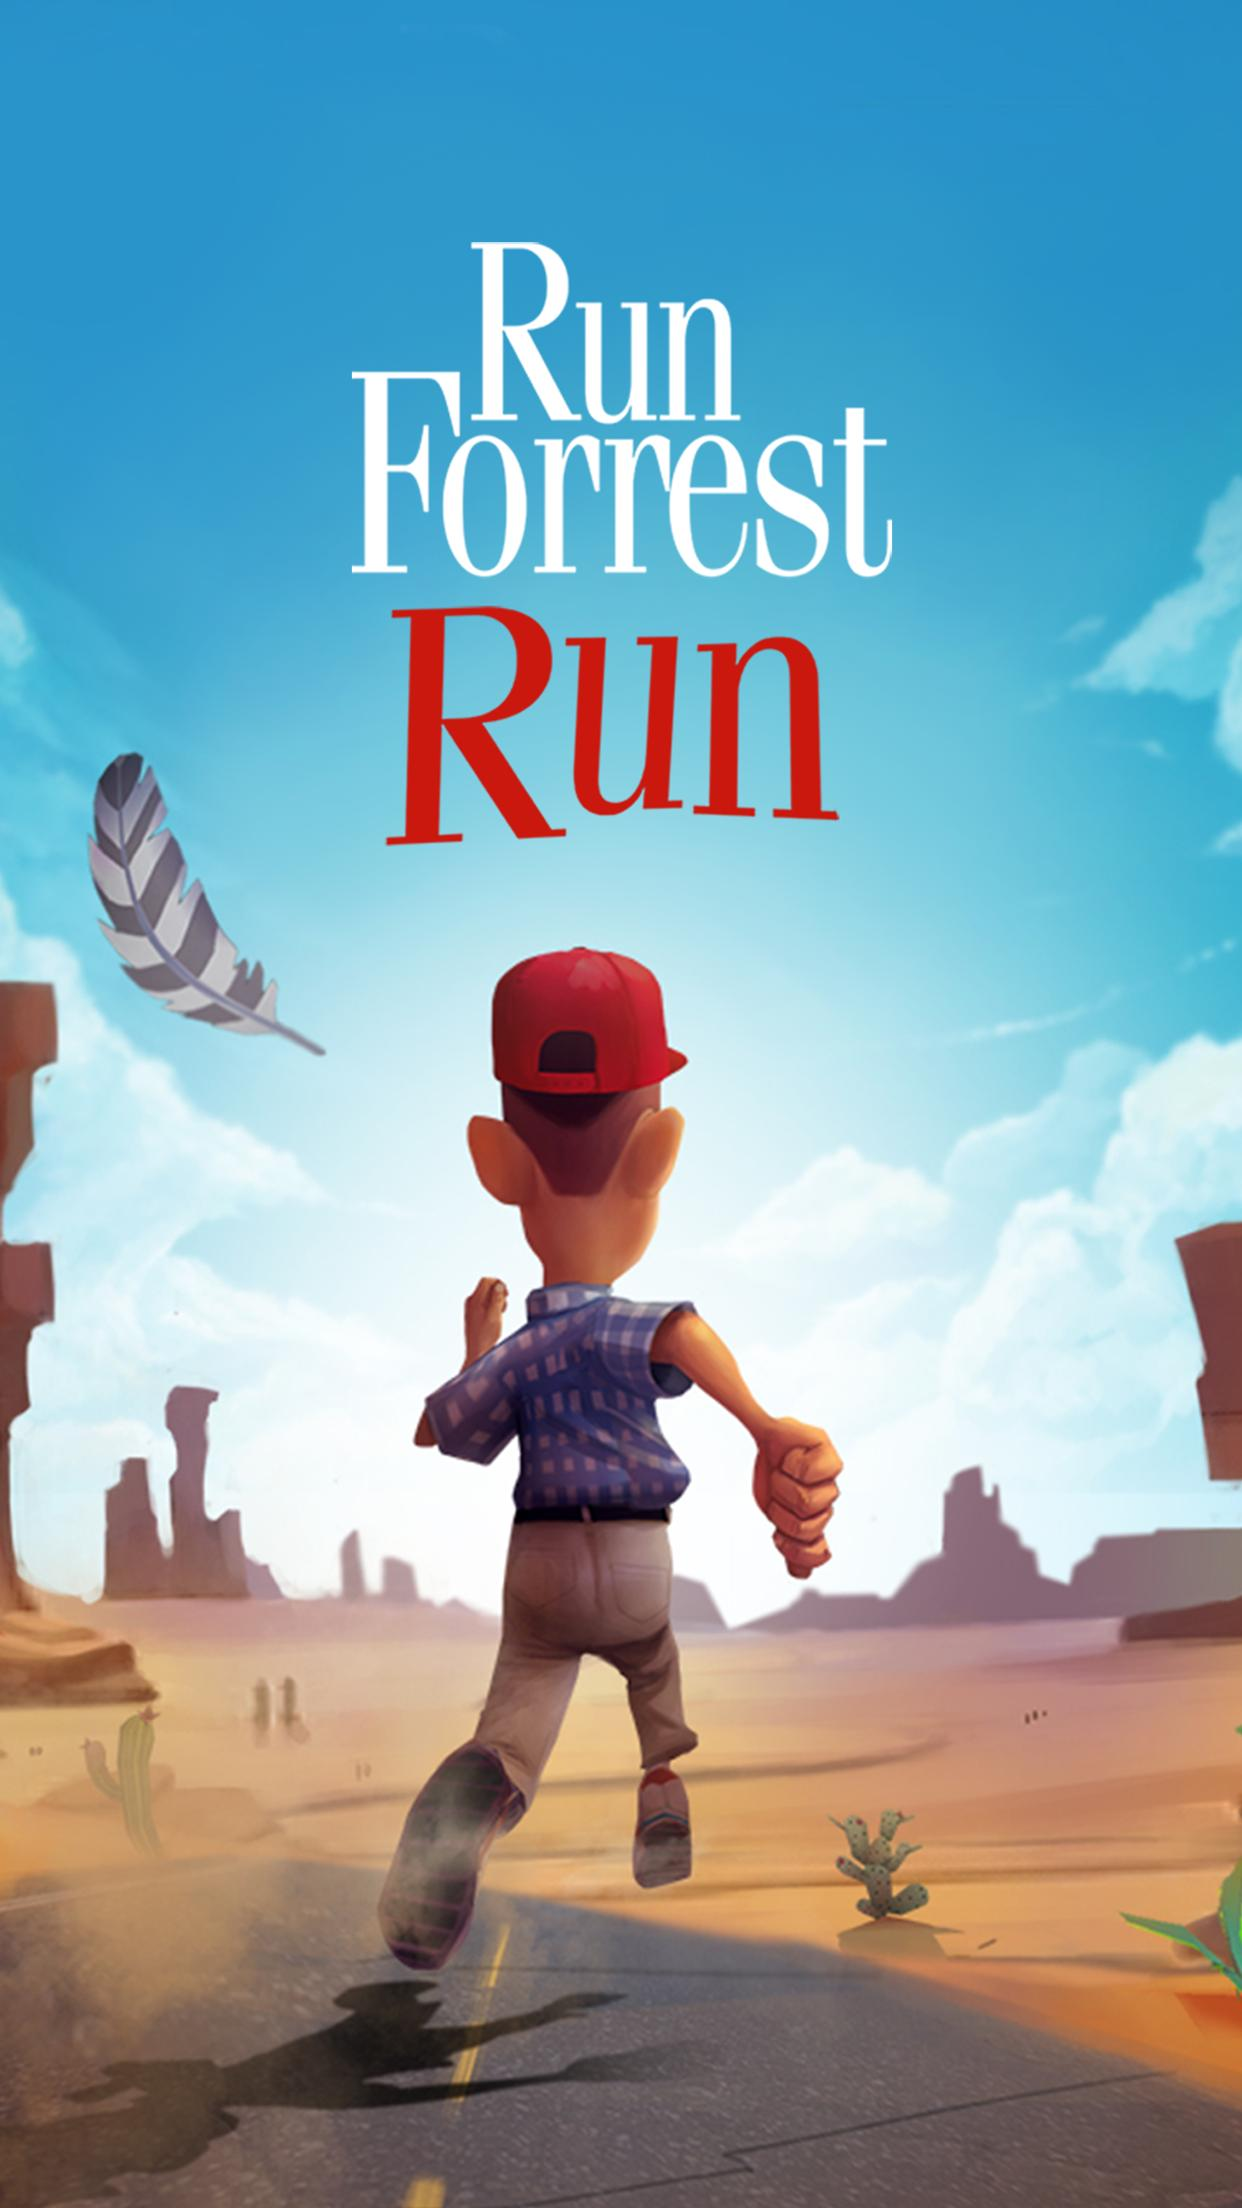 Run Forrest Run - New Games 2020: Running Games 1.6.4 Screenshot 18